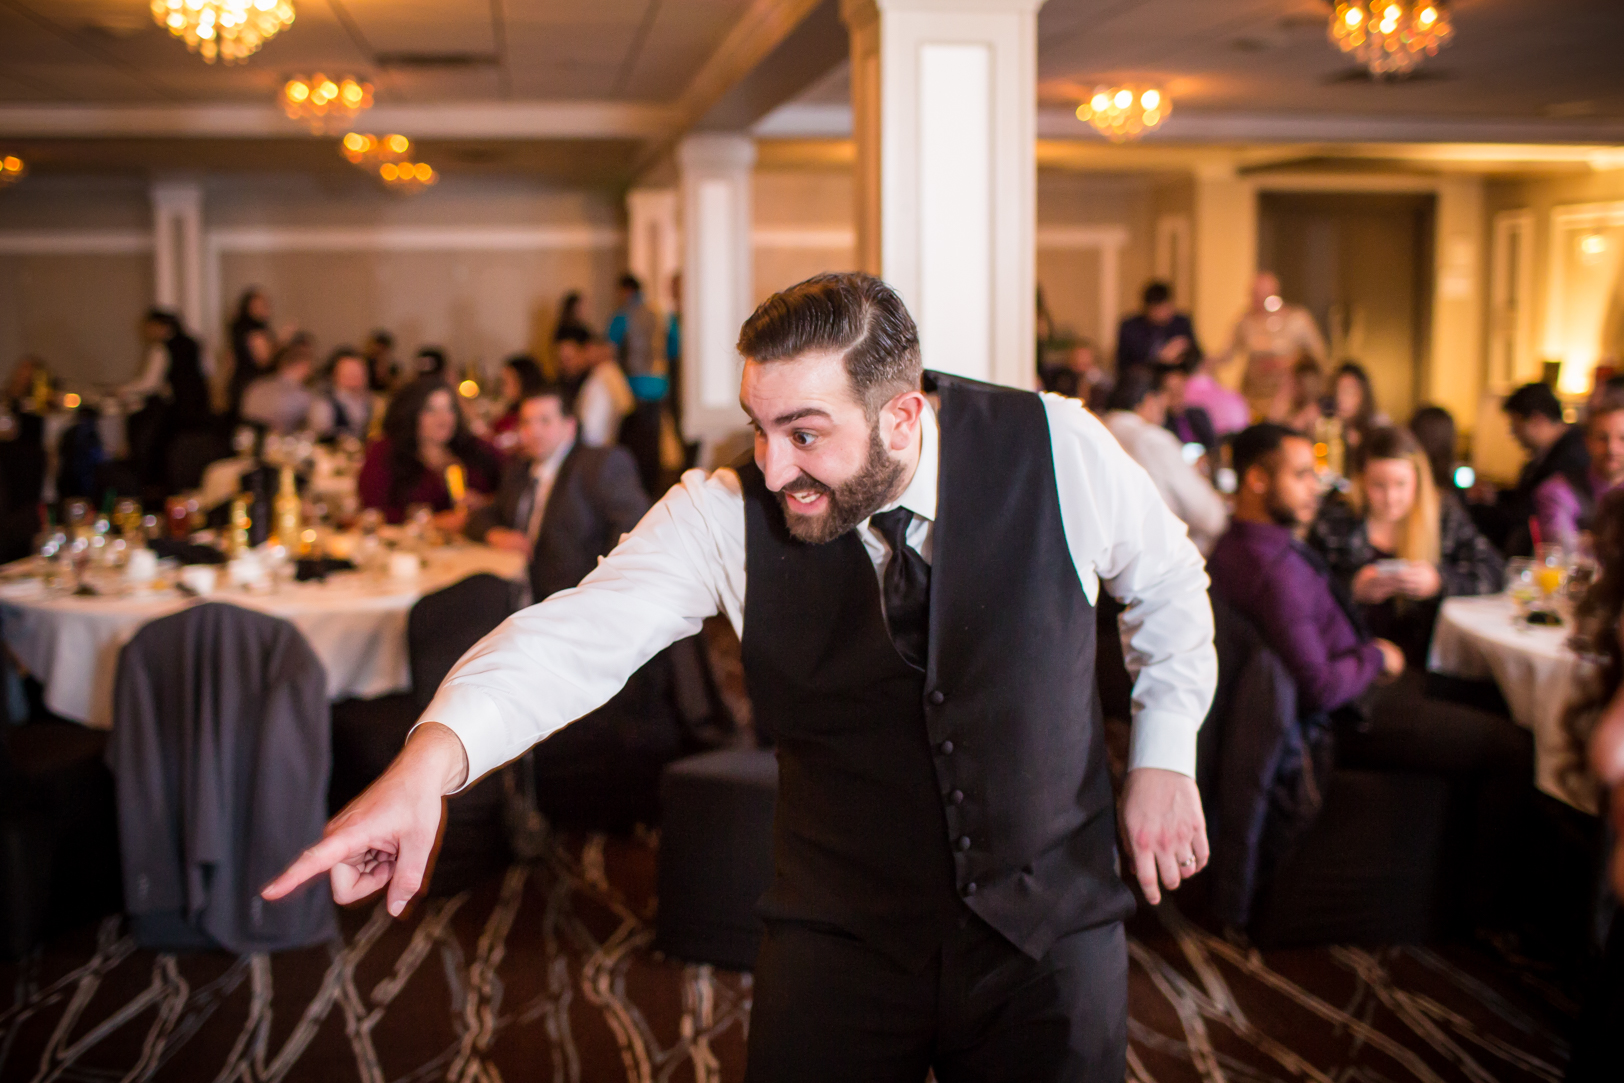 fun wedding dance photos